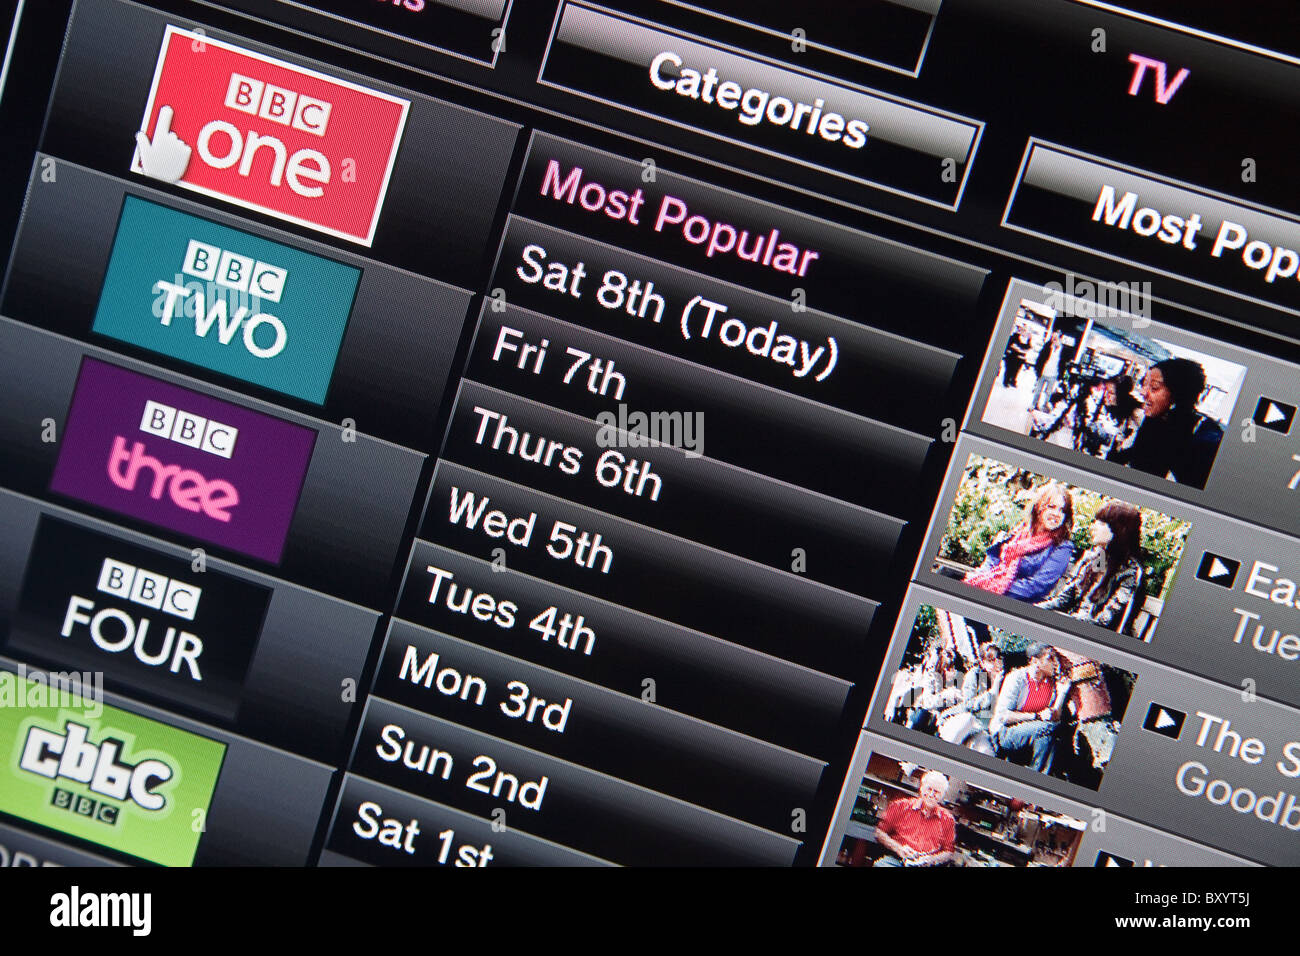 BBC iPlayer On Demand service as displayed on a HD High Definition